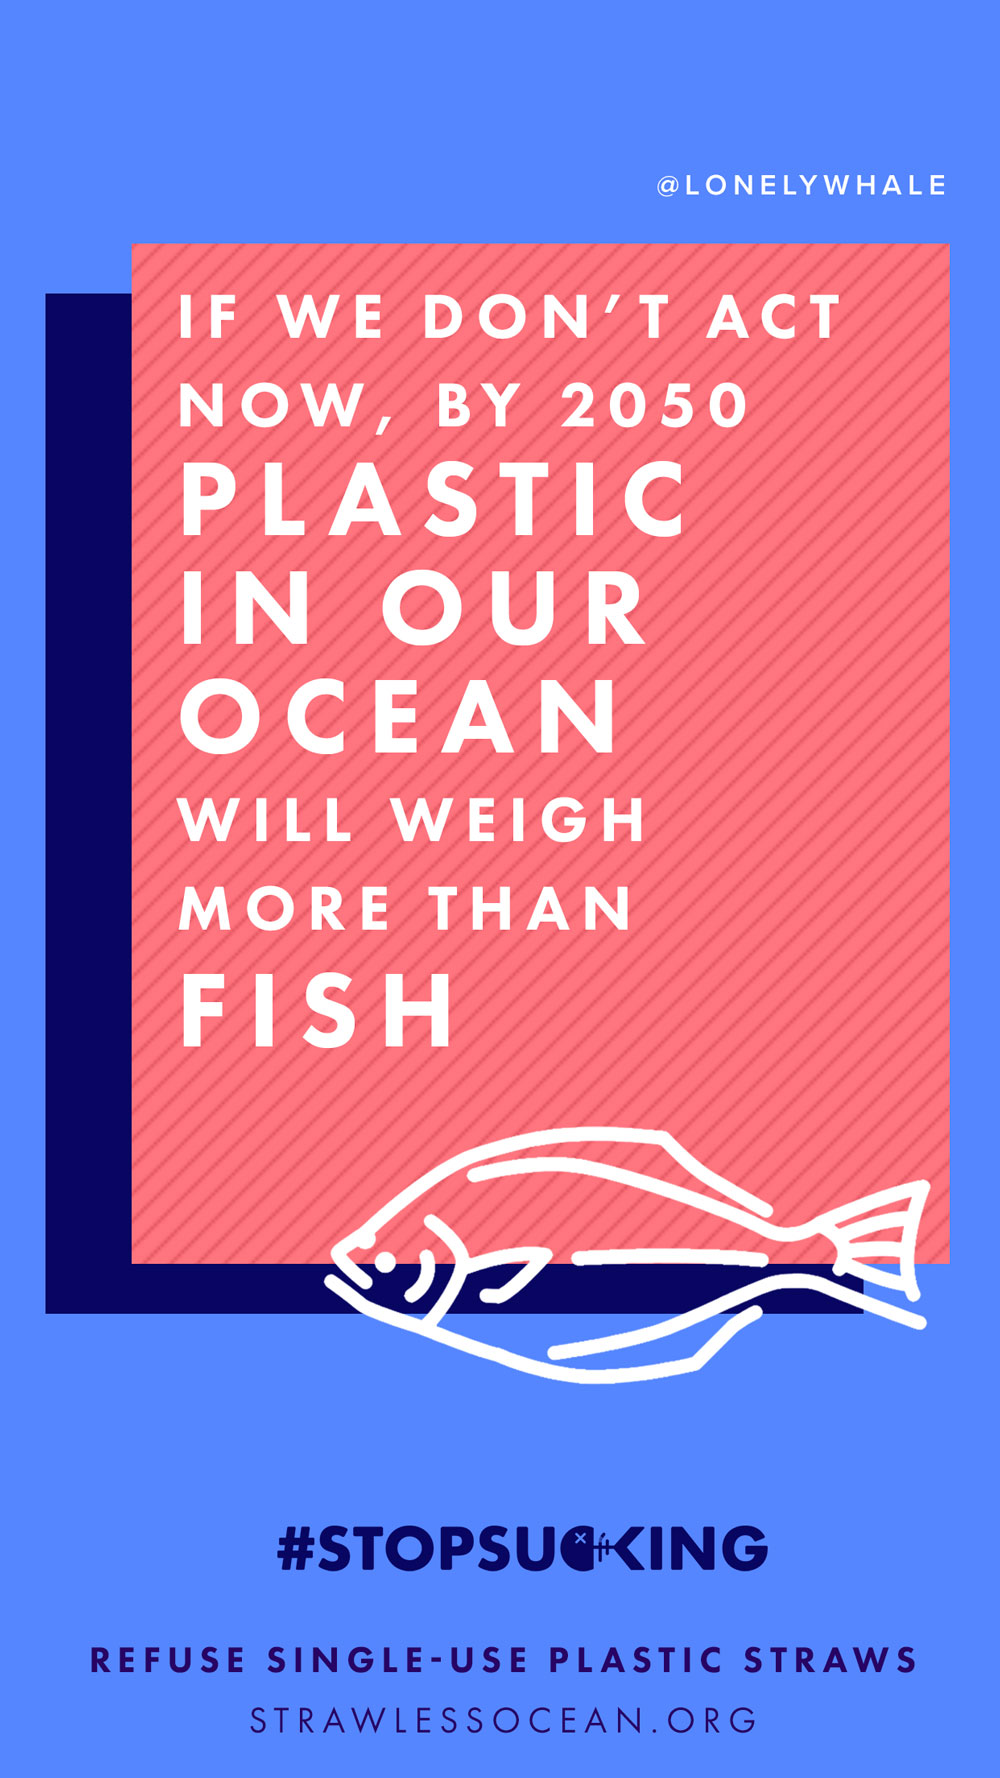 Stop Sucking on plastic straws - join the Lonely Whale campaign to save our oceans.